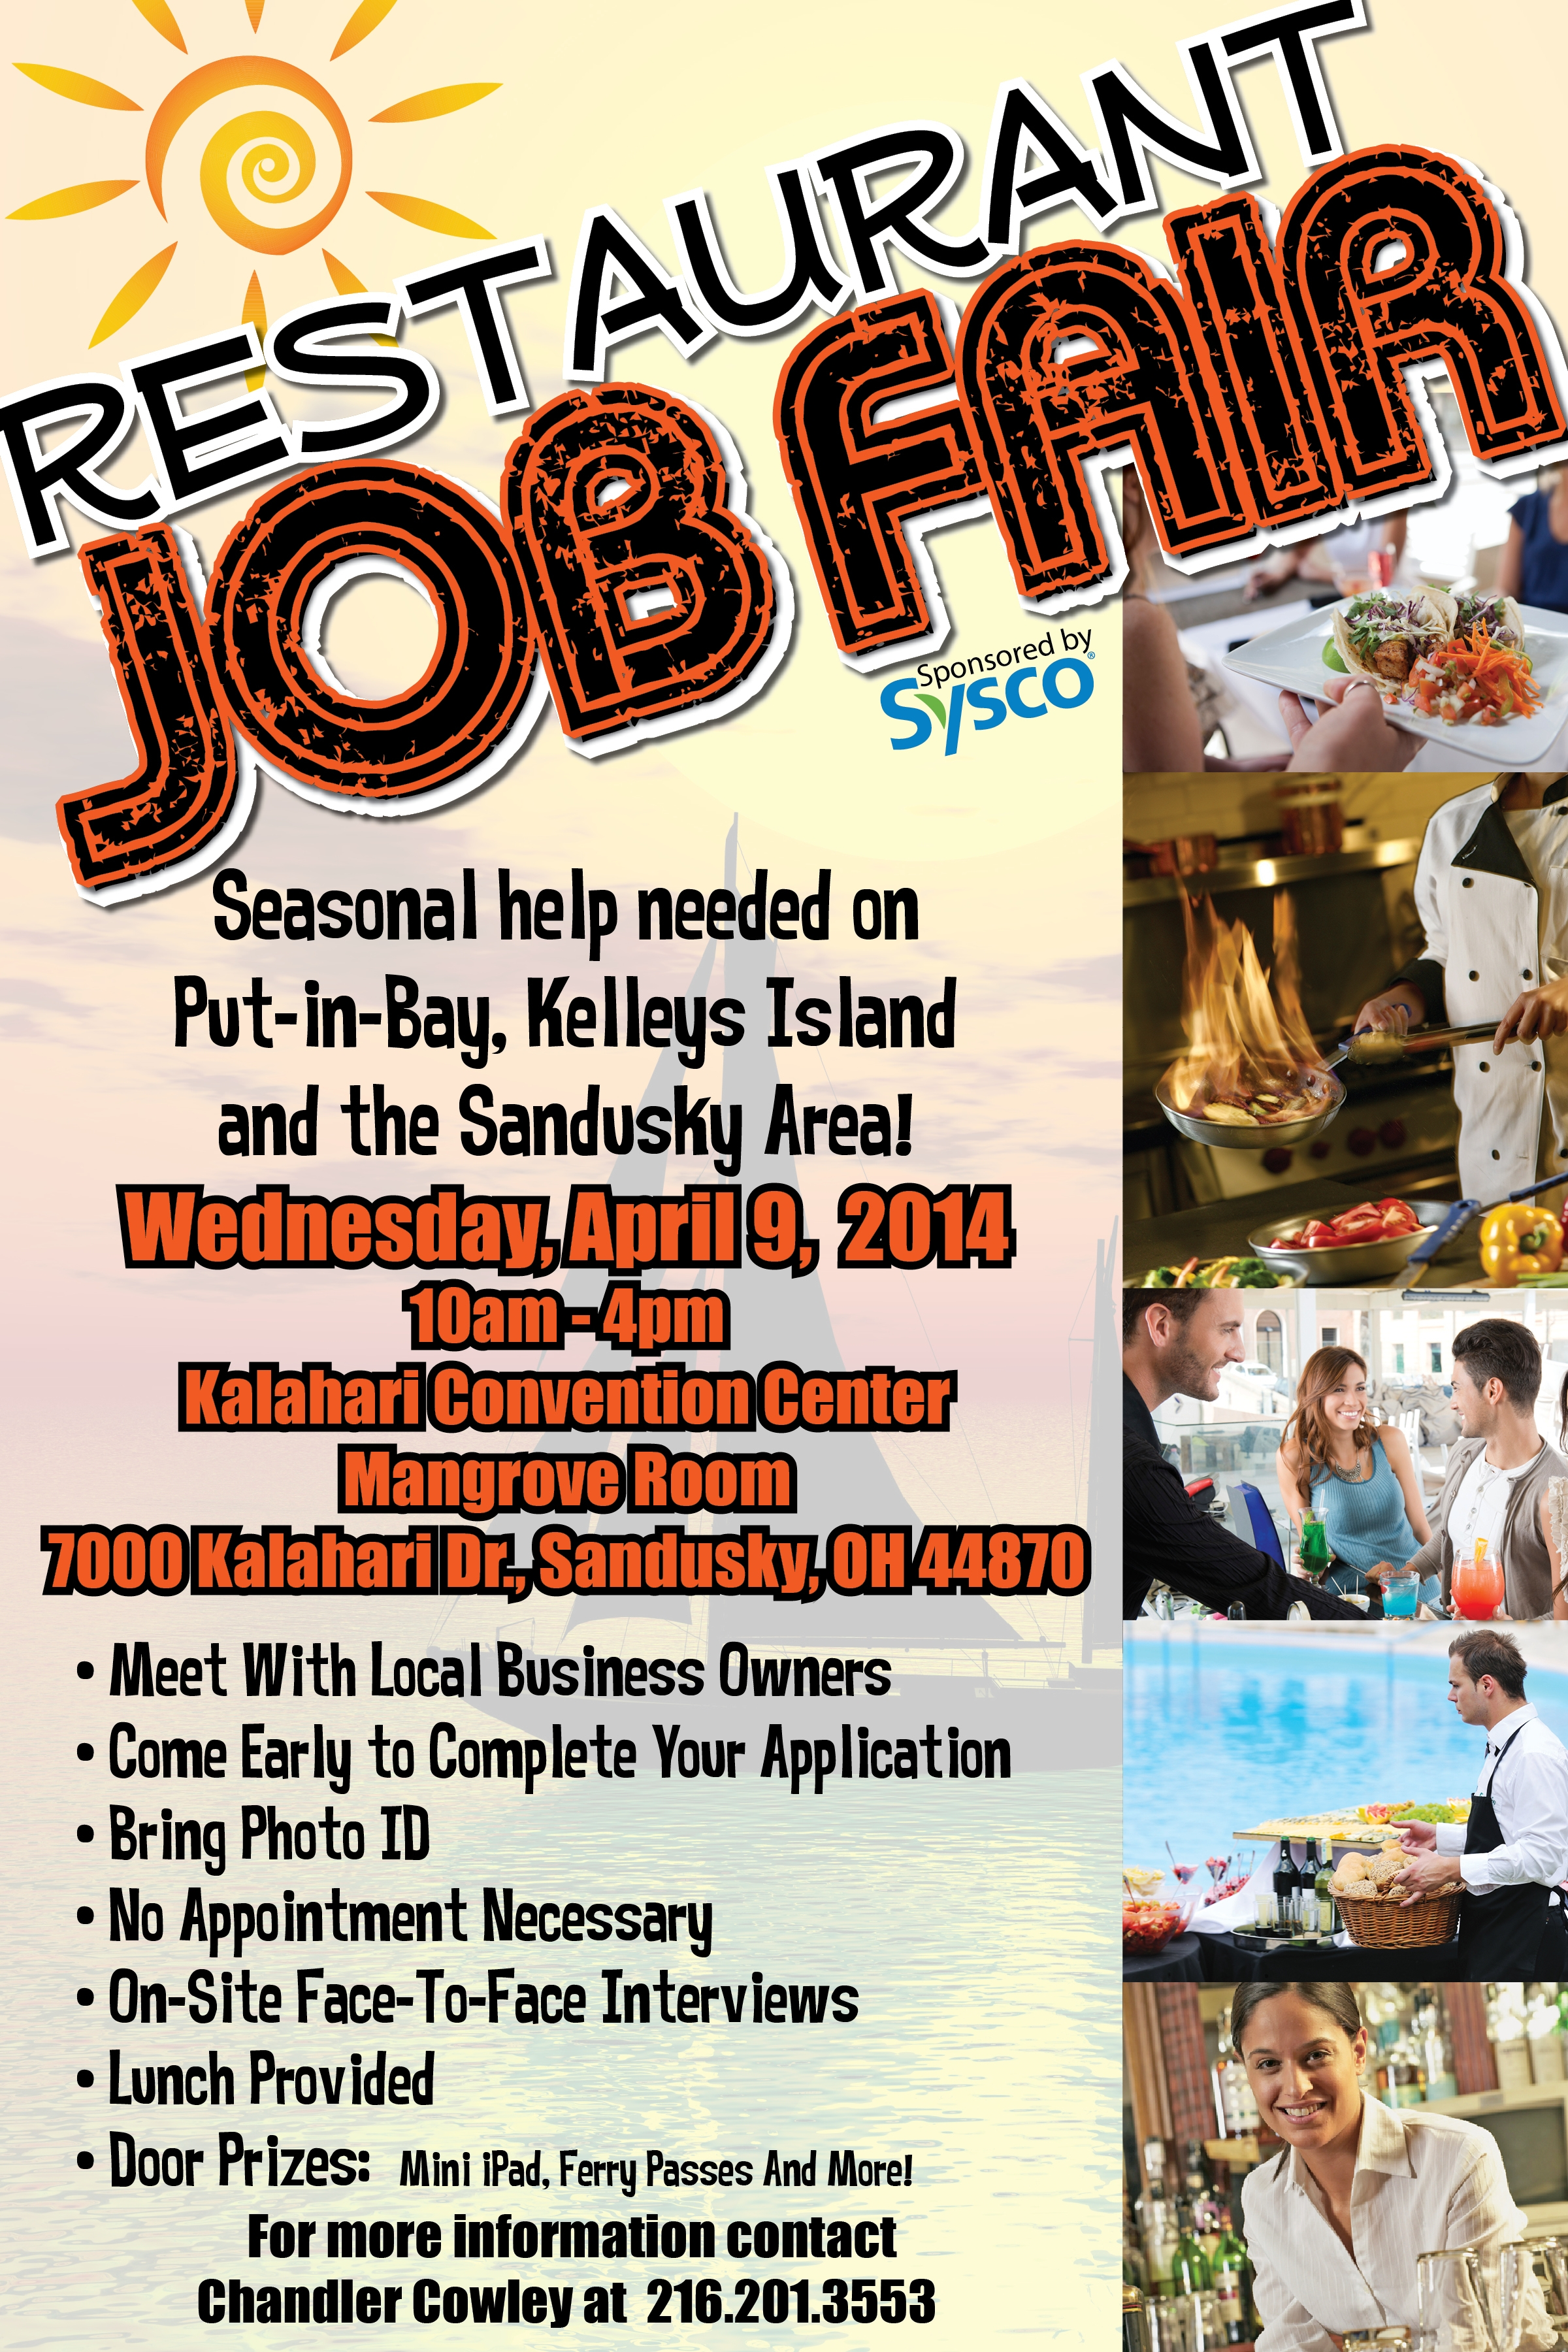 2014 Restaurant Job Fair Is April 9th At Kalahari In